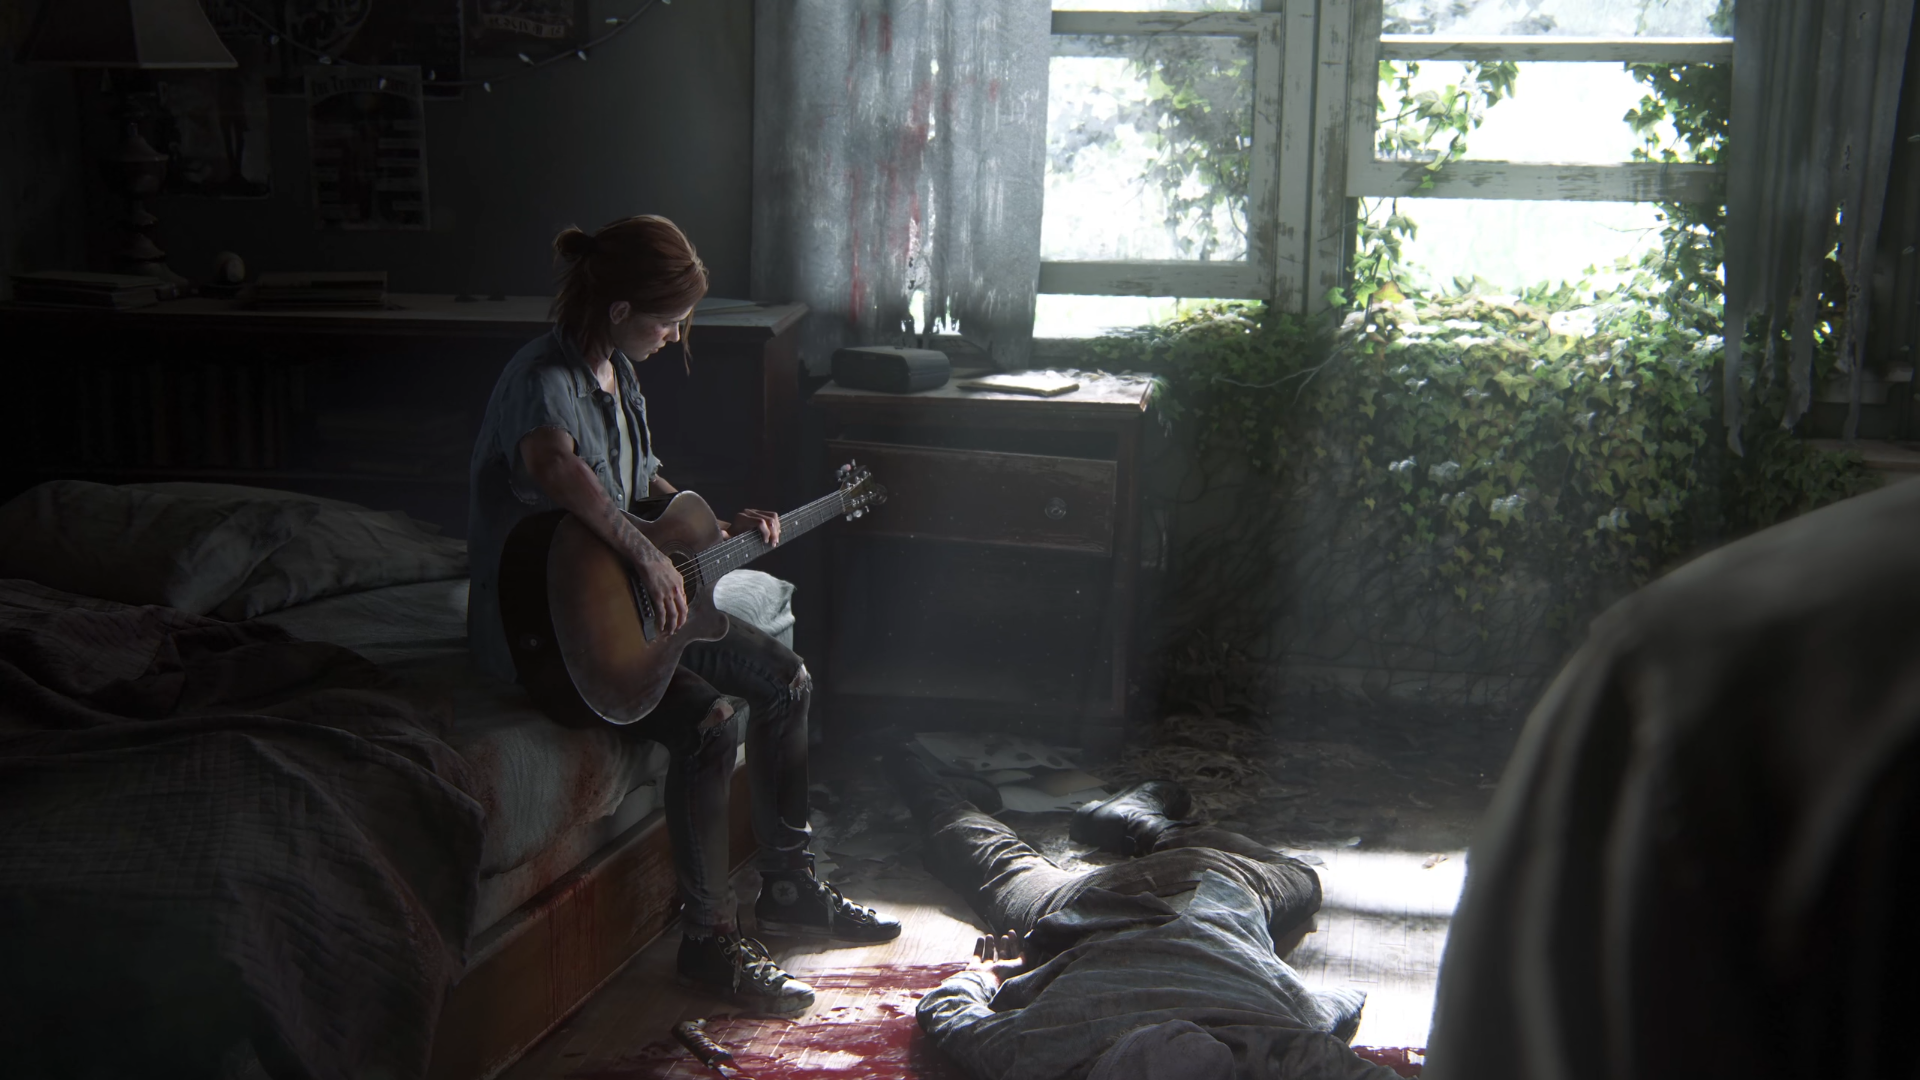 43 The Last of Us Part II HD Wallpapers Background Images 1920x1080